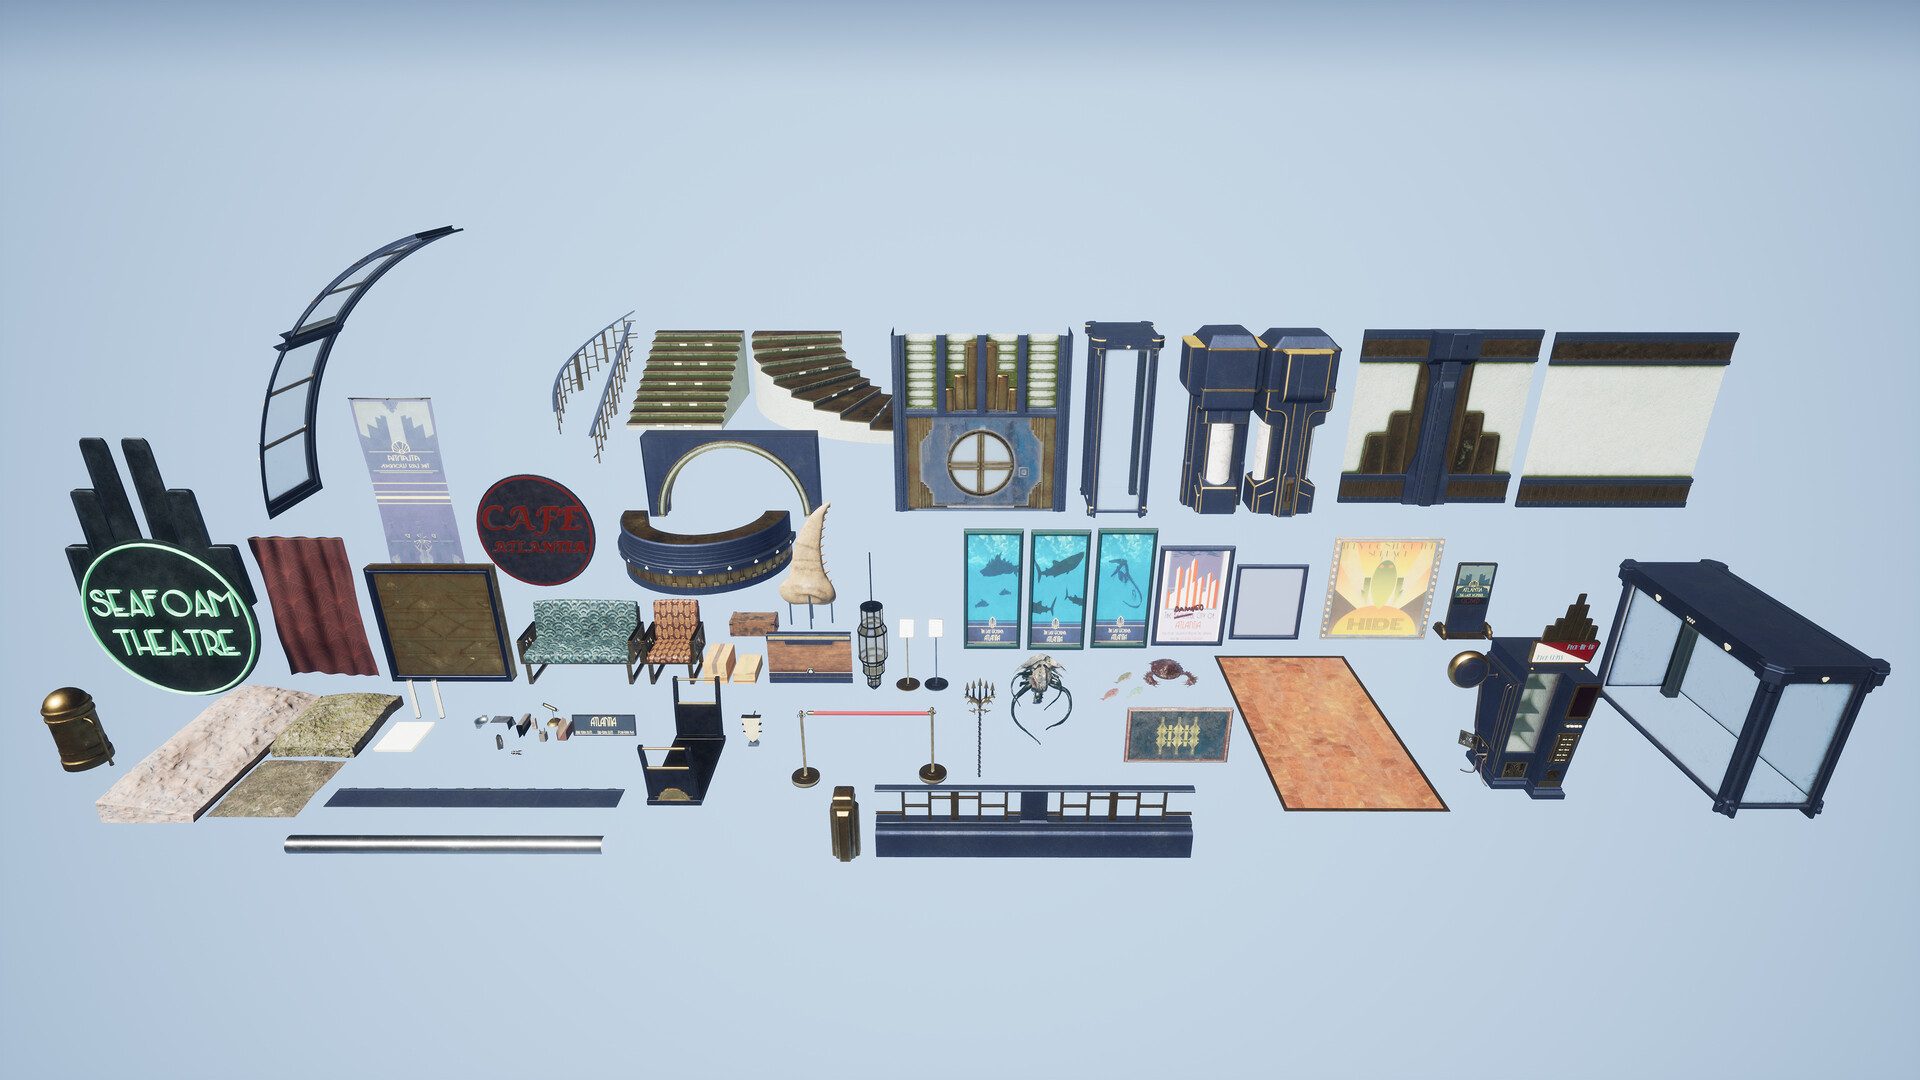 Grouped Modular Assets that were used for the scene.